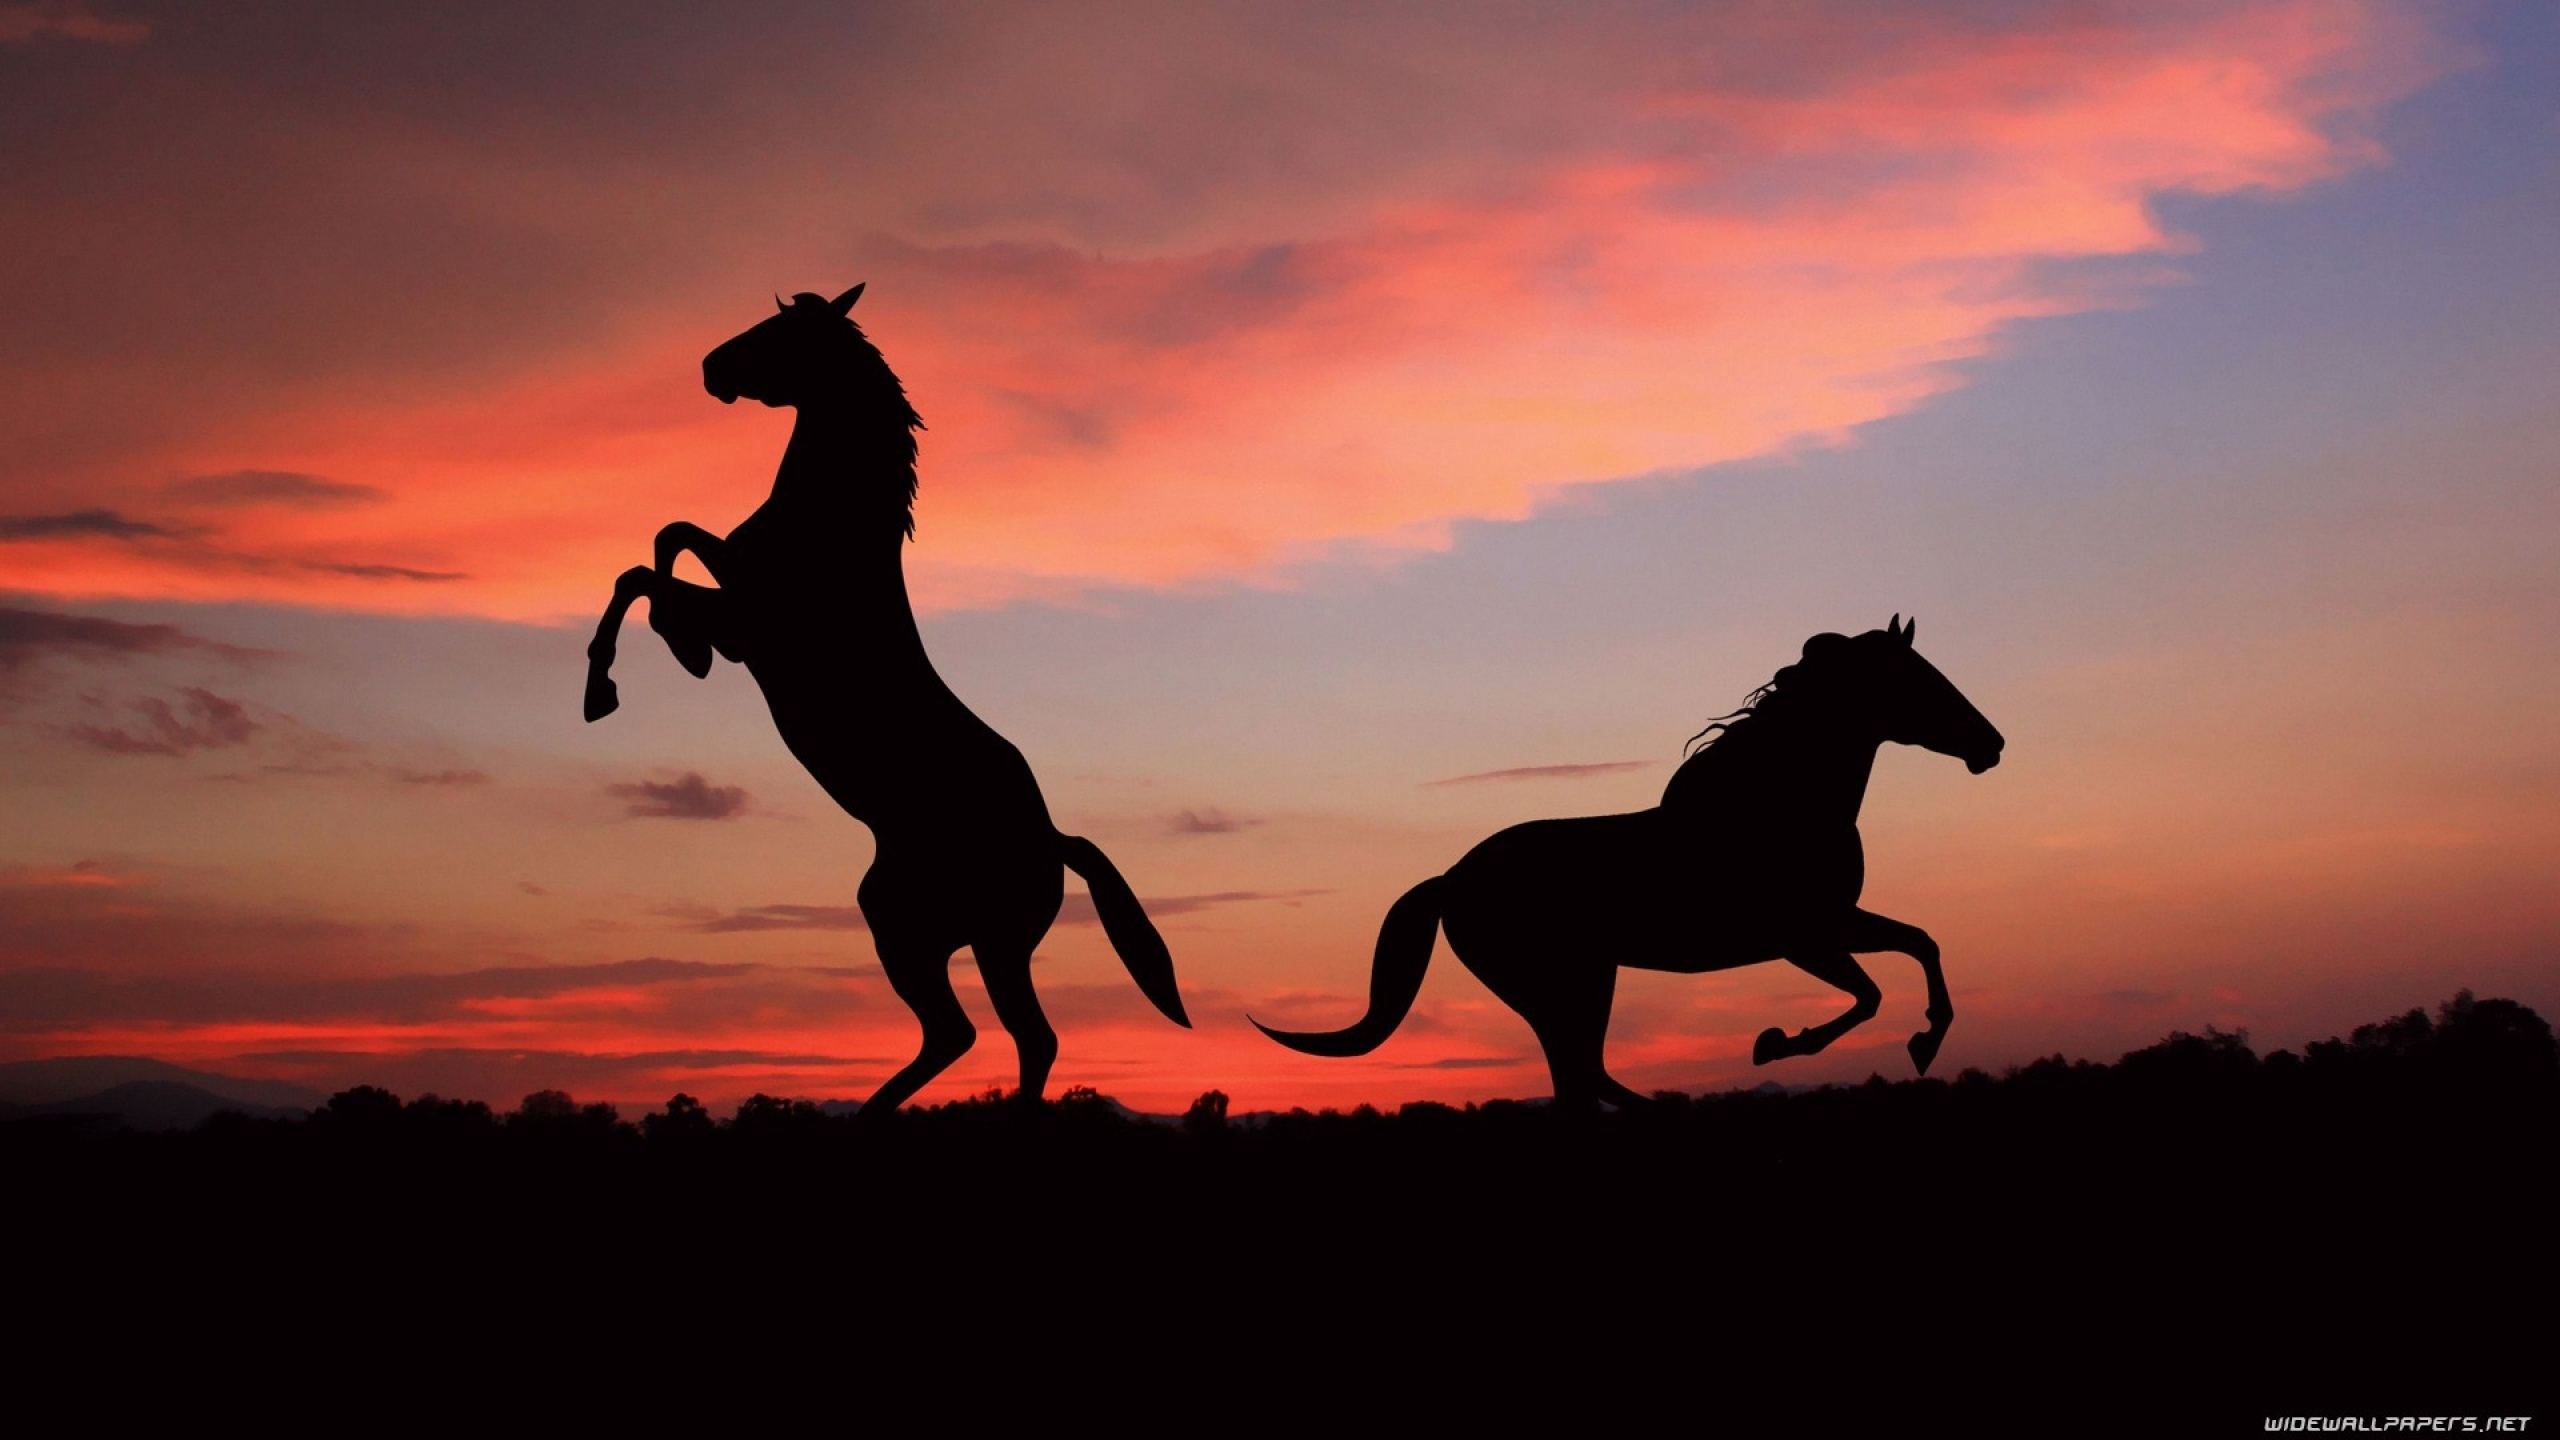 Top Wallpaper Horse Creepy - tumblr_static_sunset_clouds_nature_animals_h_2560x1440_wallpaperhi  Image_885969.jpg